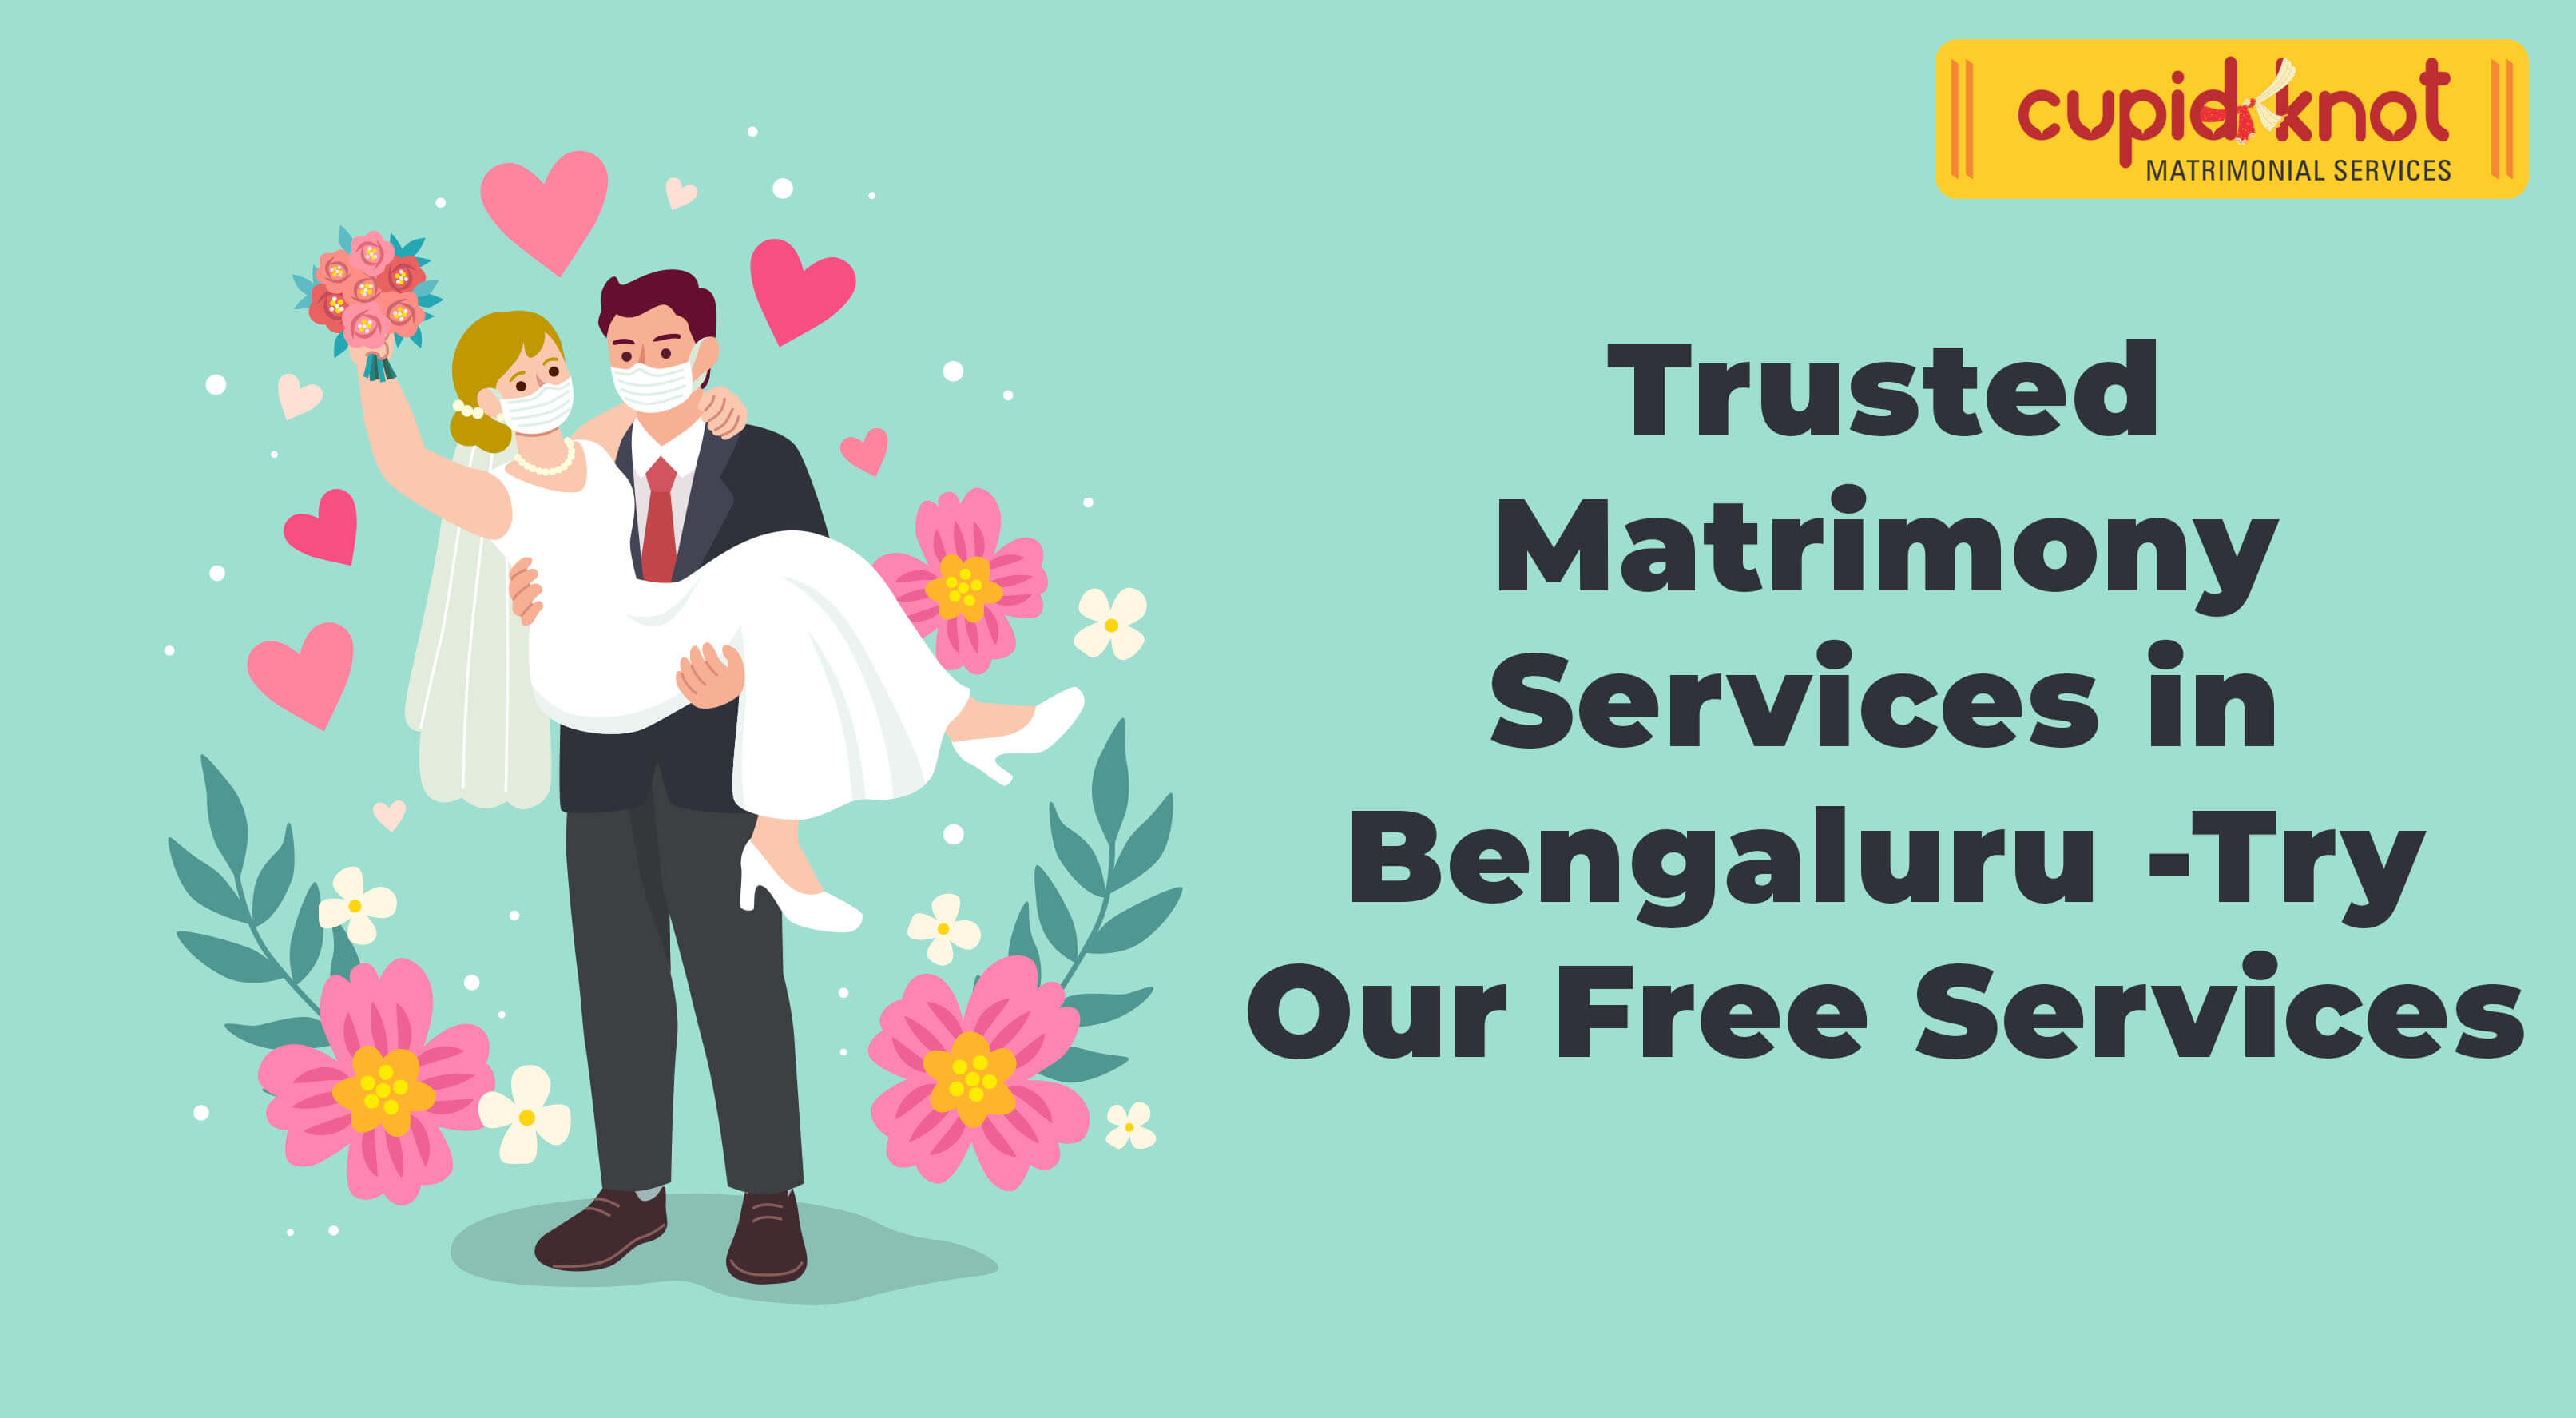 Trusted Matrimony Services in Bengaluru-Try Our Free Services